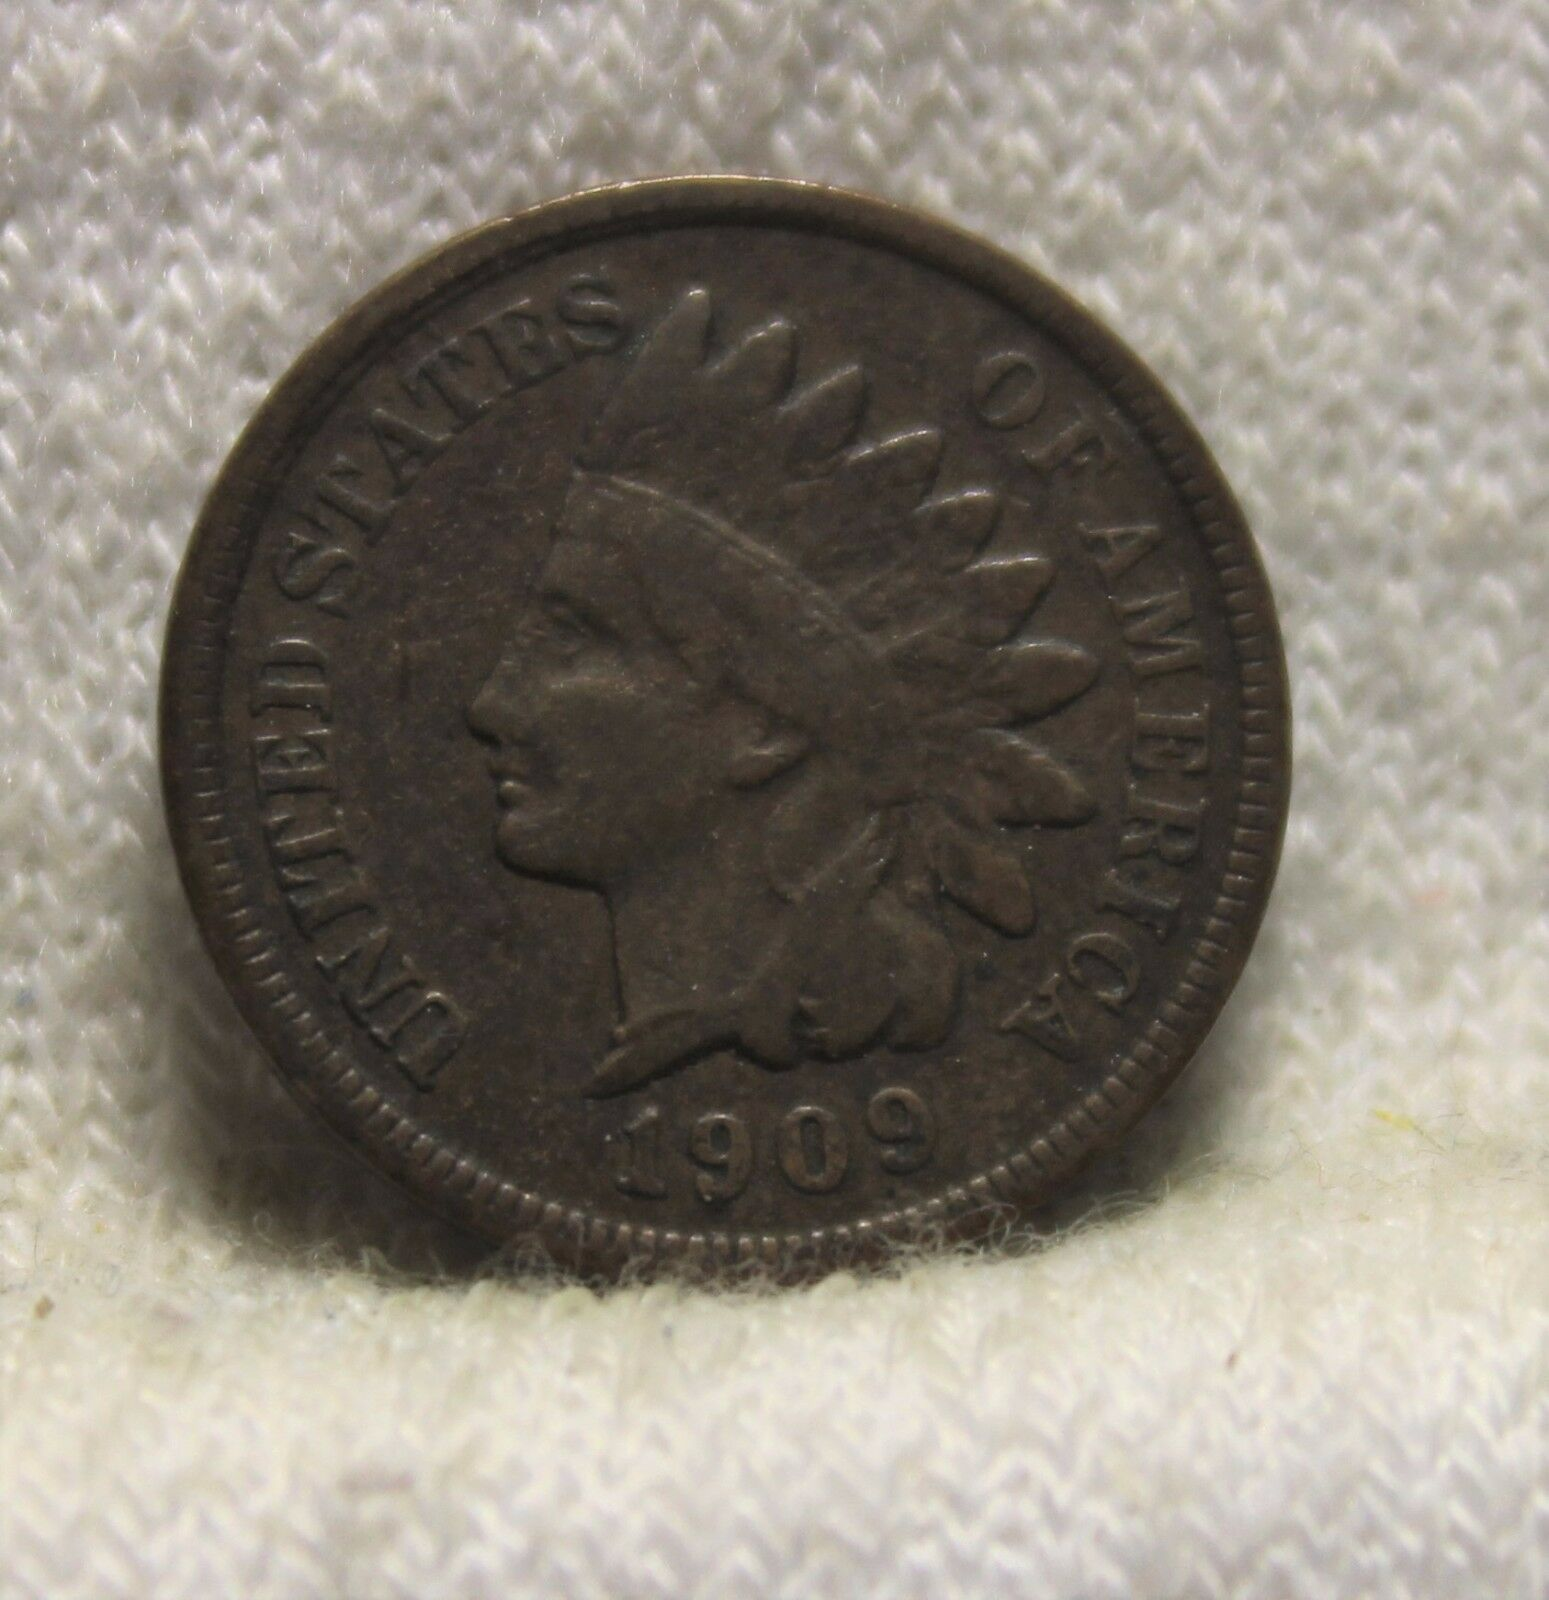 1909 Indian Head Penny - $10.95